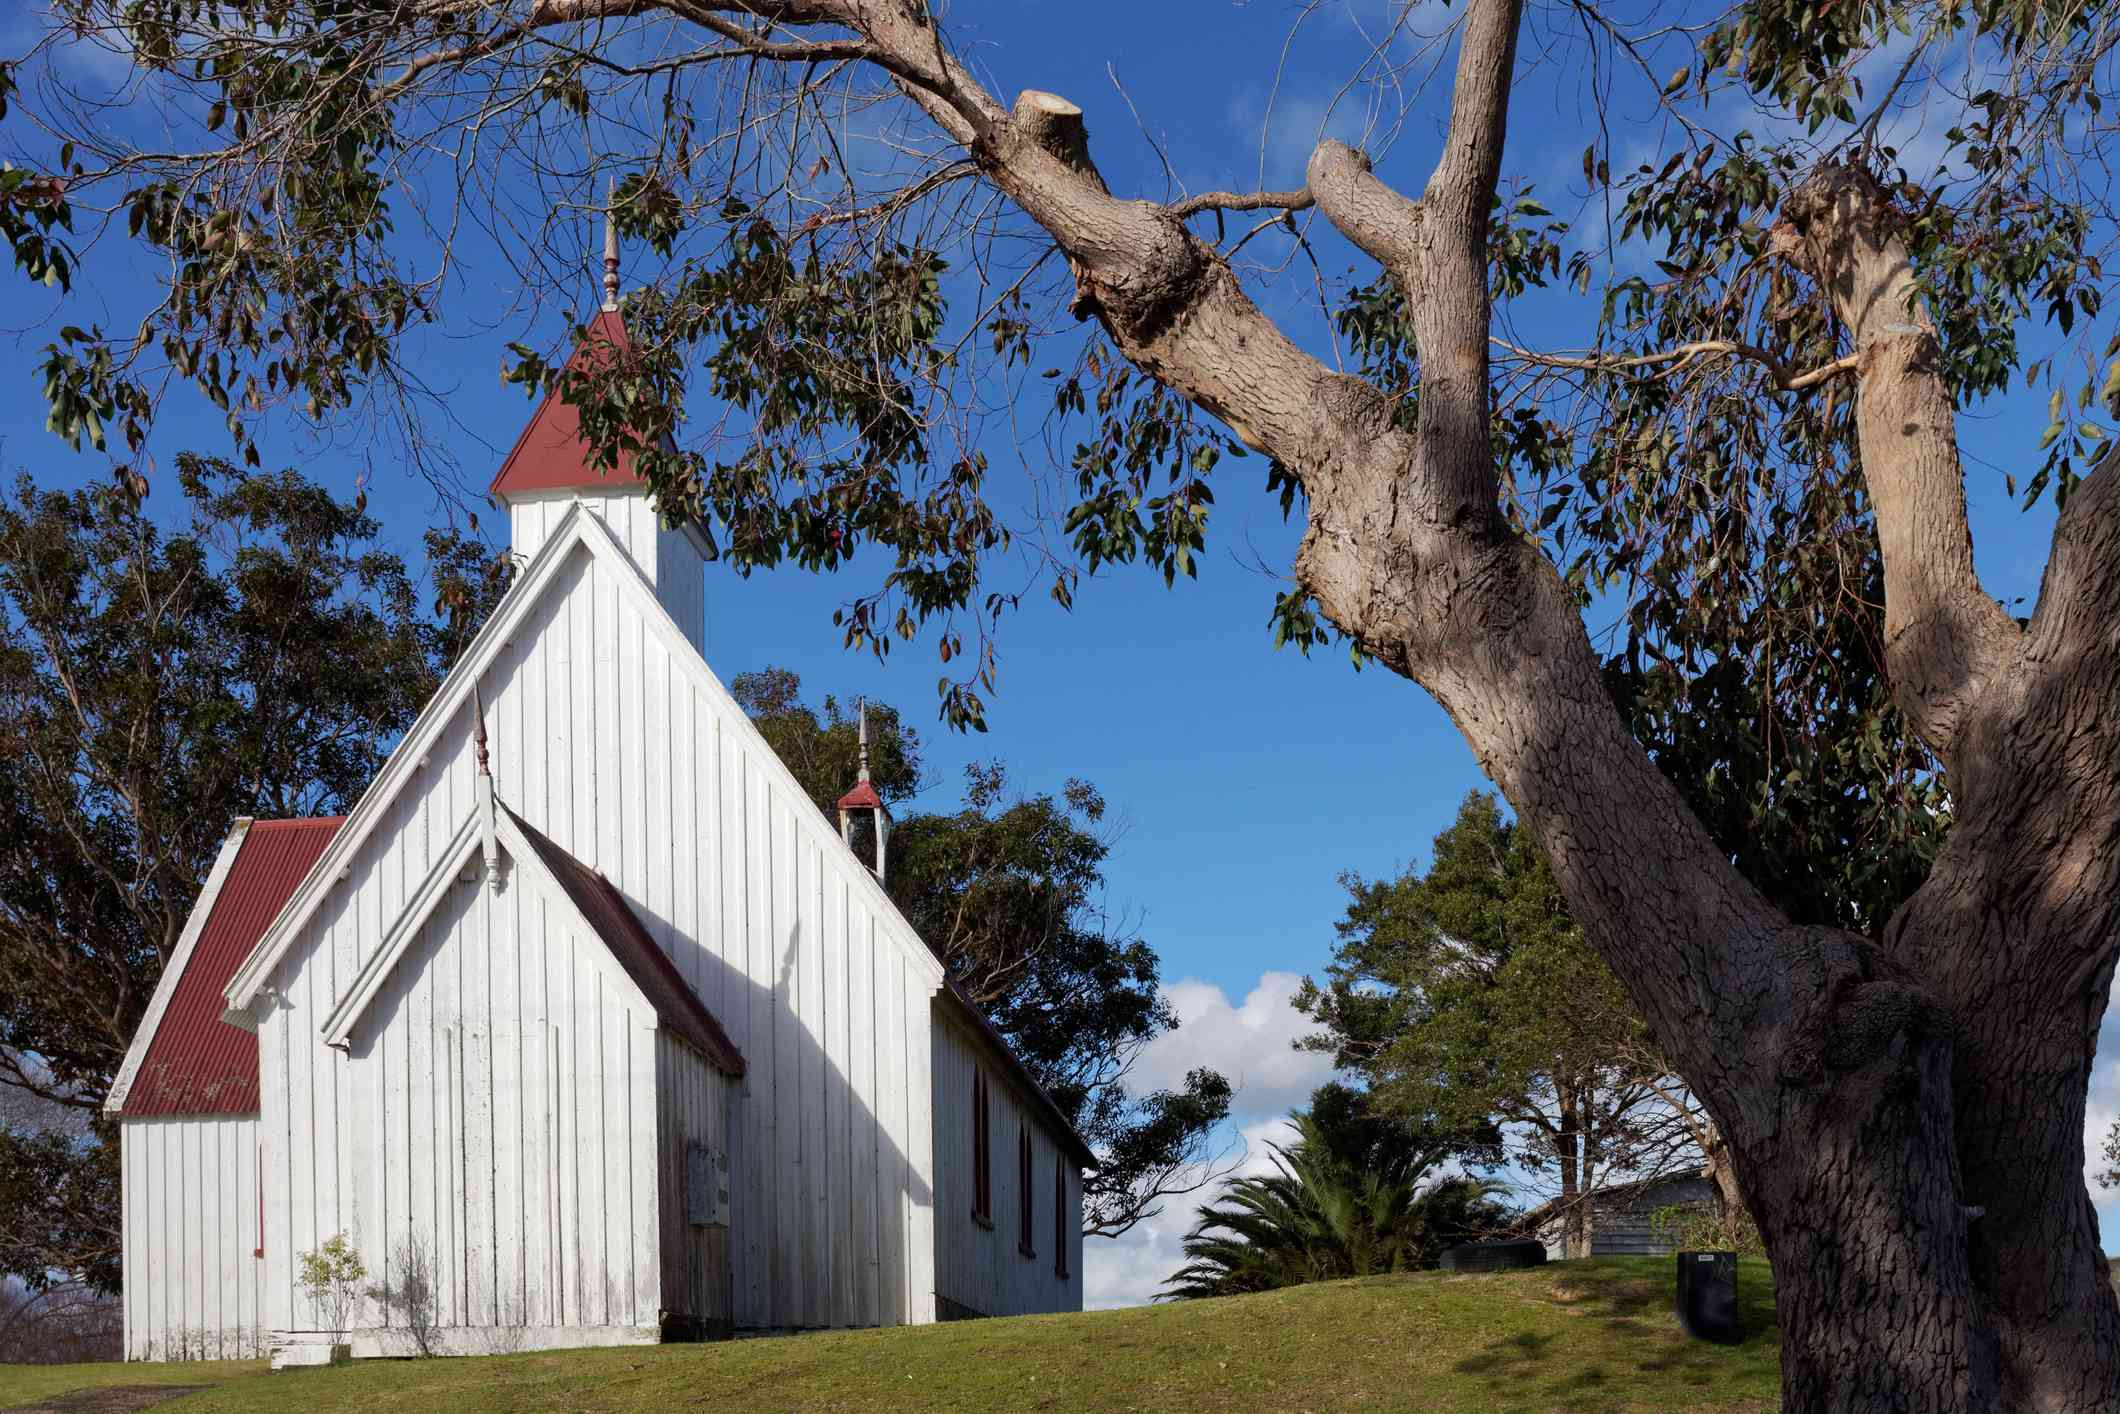 Side view of a small white church with a red roof. There is a tree in the foreground